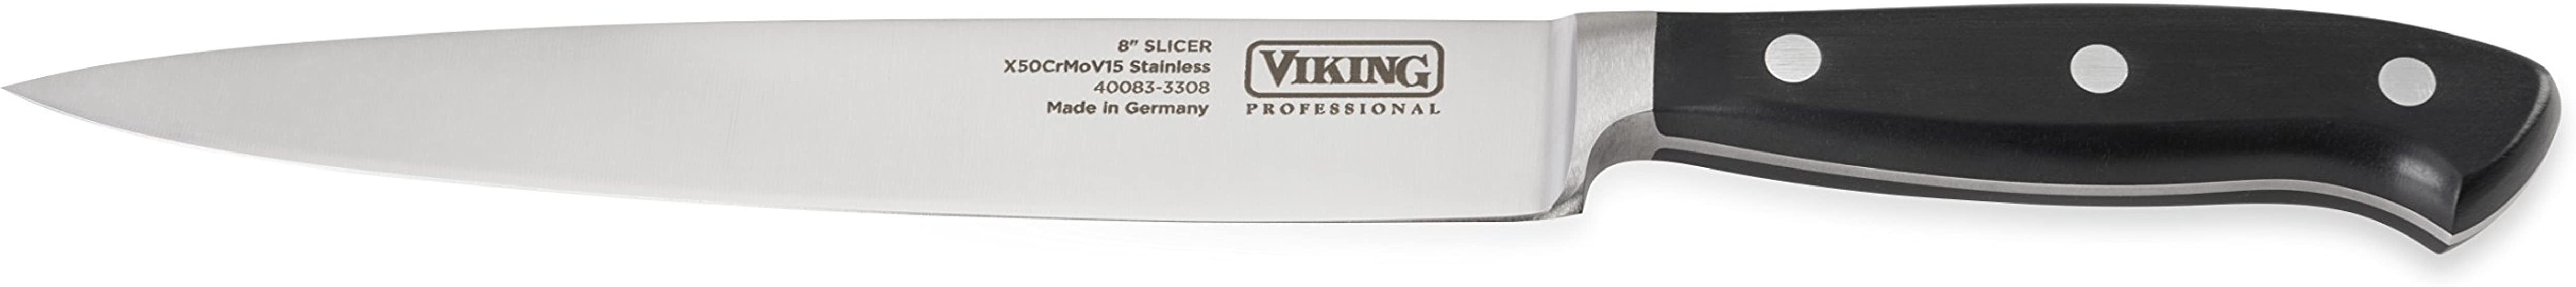 Viking Professional Cutlery Carving Knife 8 Inch